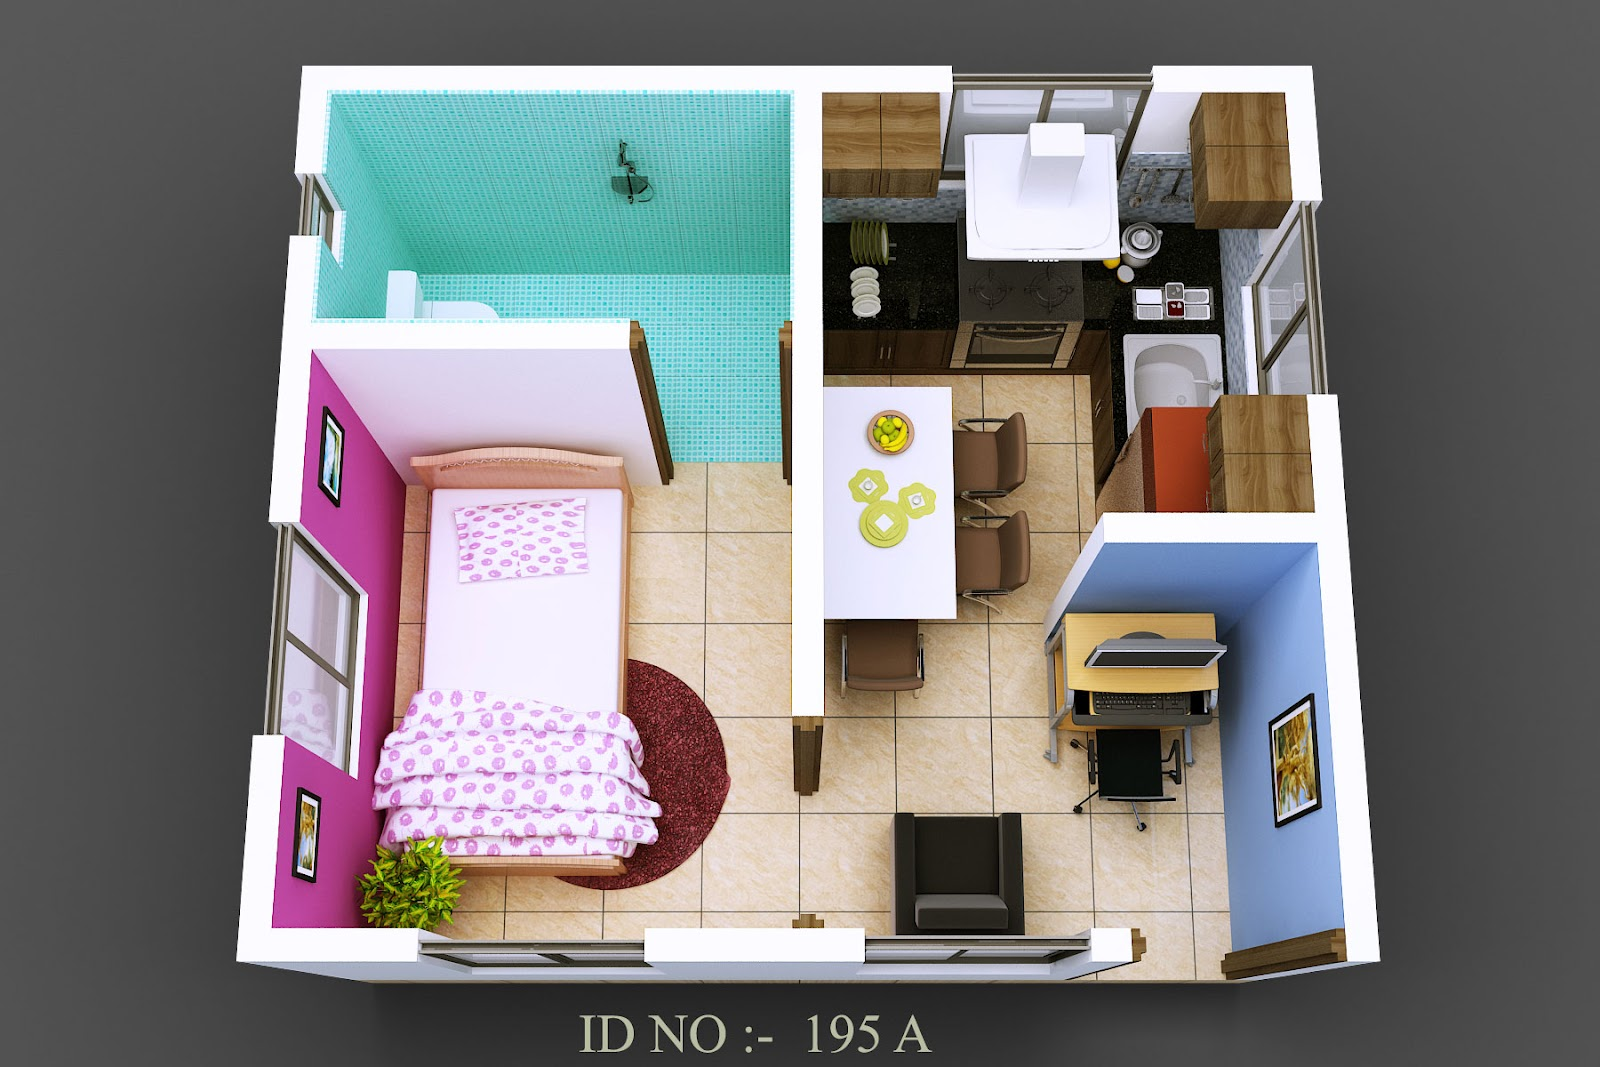 Are you thinking about remodeling your home? DESIGN YOUR OWN HOME | HOME DESIGN IDEAS | HOME INTERIOR ...